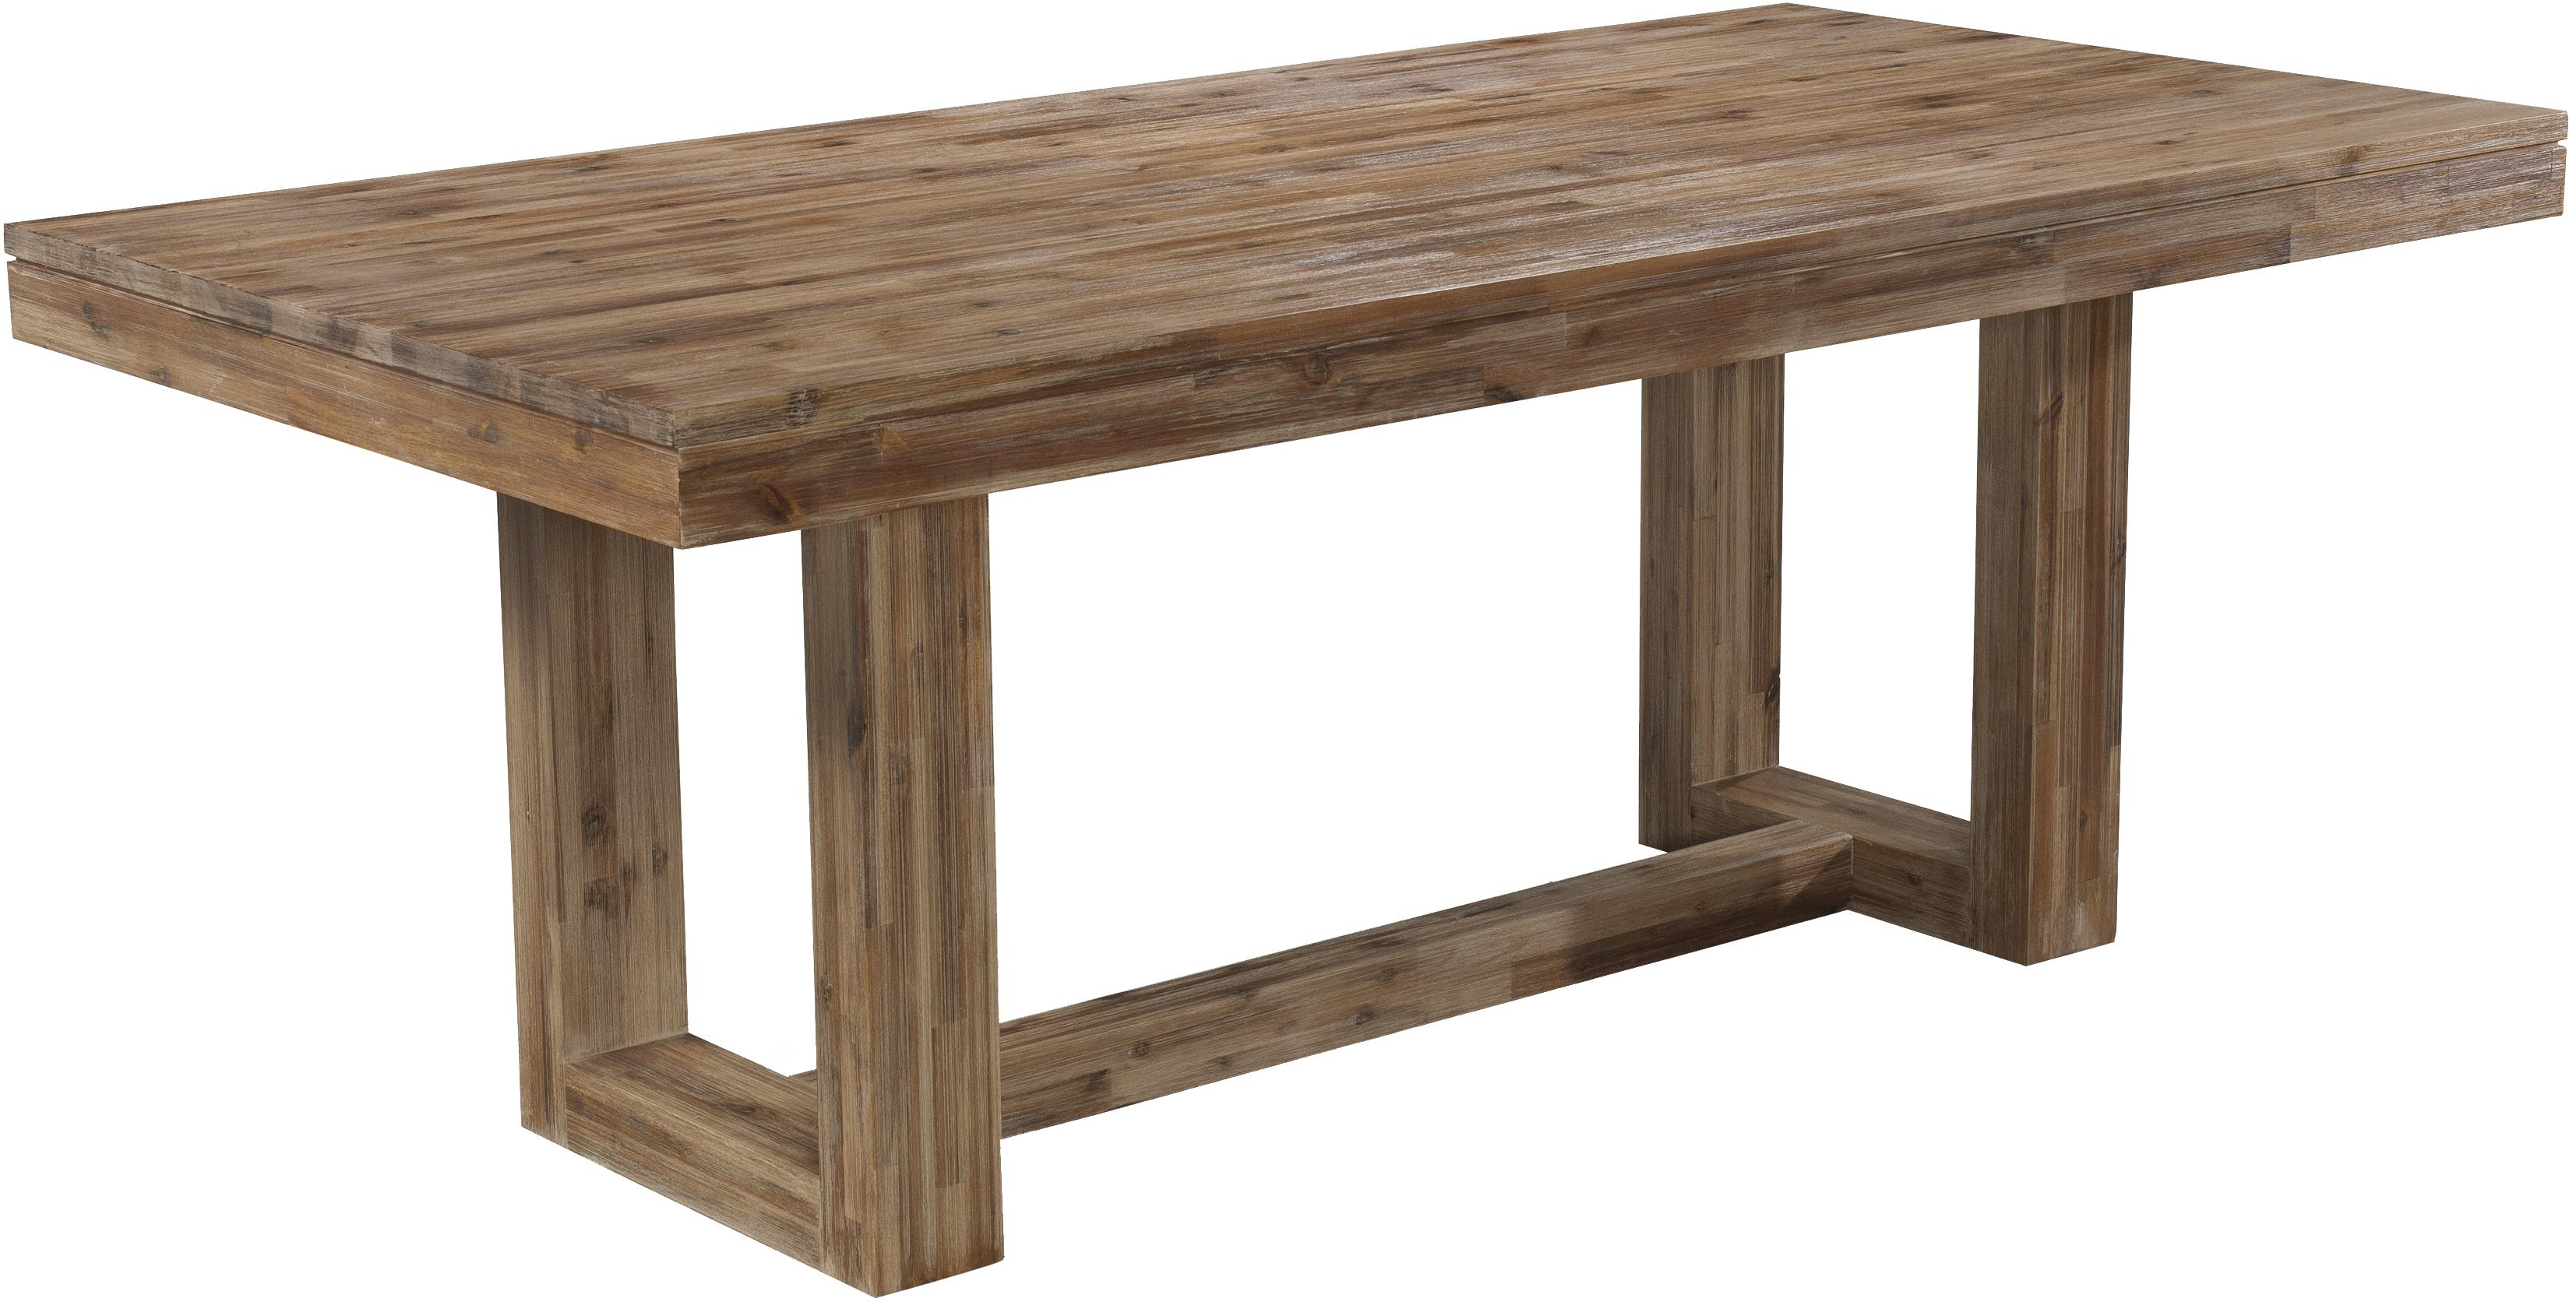 Modern rectangular dining table with rustic trestle base for Furniture dining table